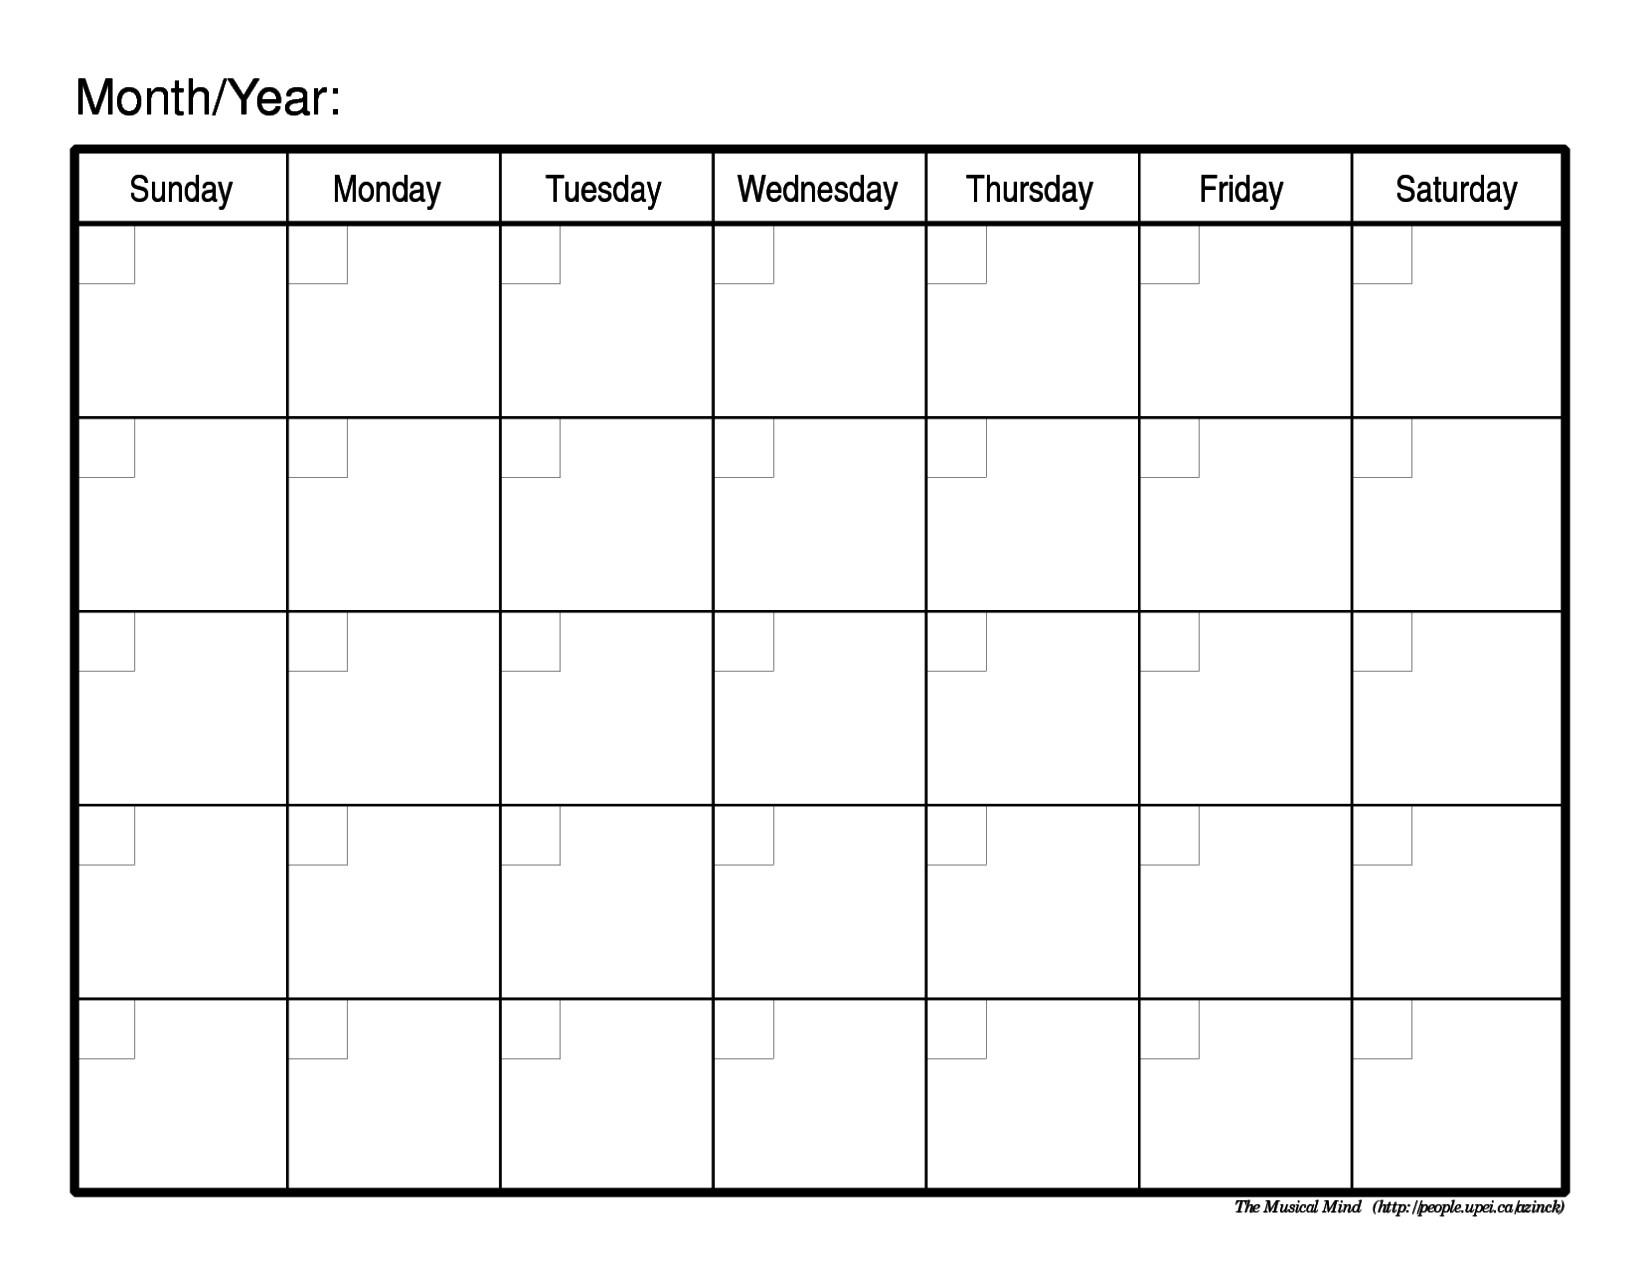 Schedule Template Free Printable Weekly Calendar Blank Monthly | Smorad throughout Printable Blank Weekly Calendars Templates